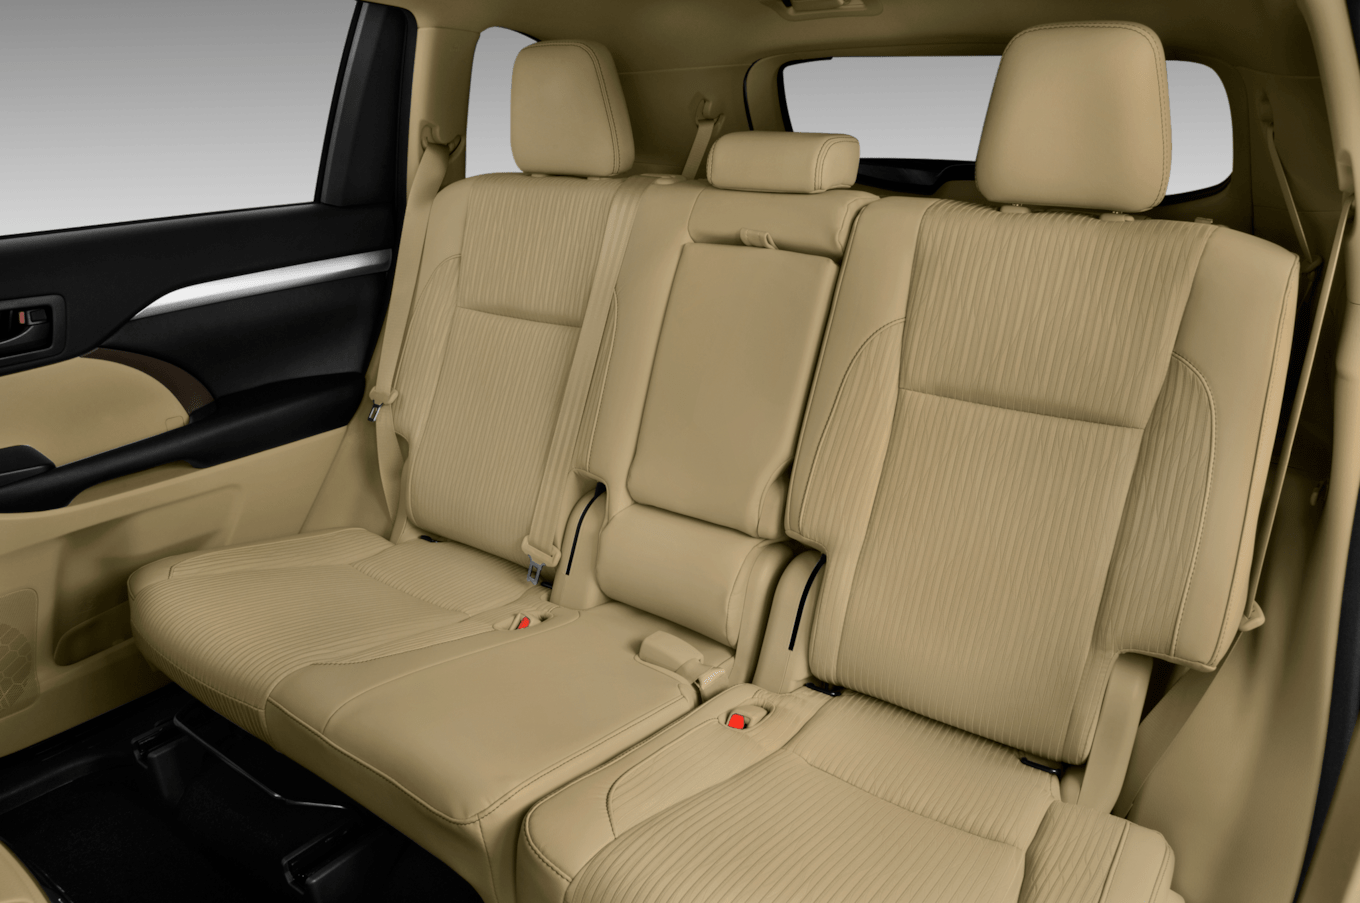 toyota 4runner captains chairs beach sold at cvs 2018 highlander reviews and rating motortrend 16 25